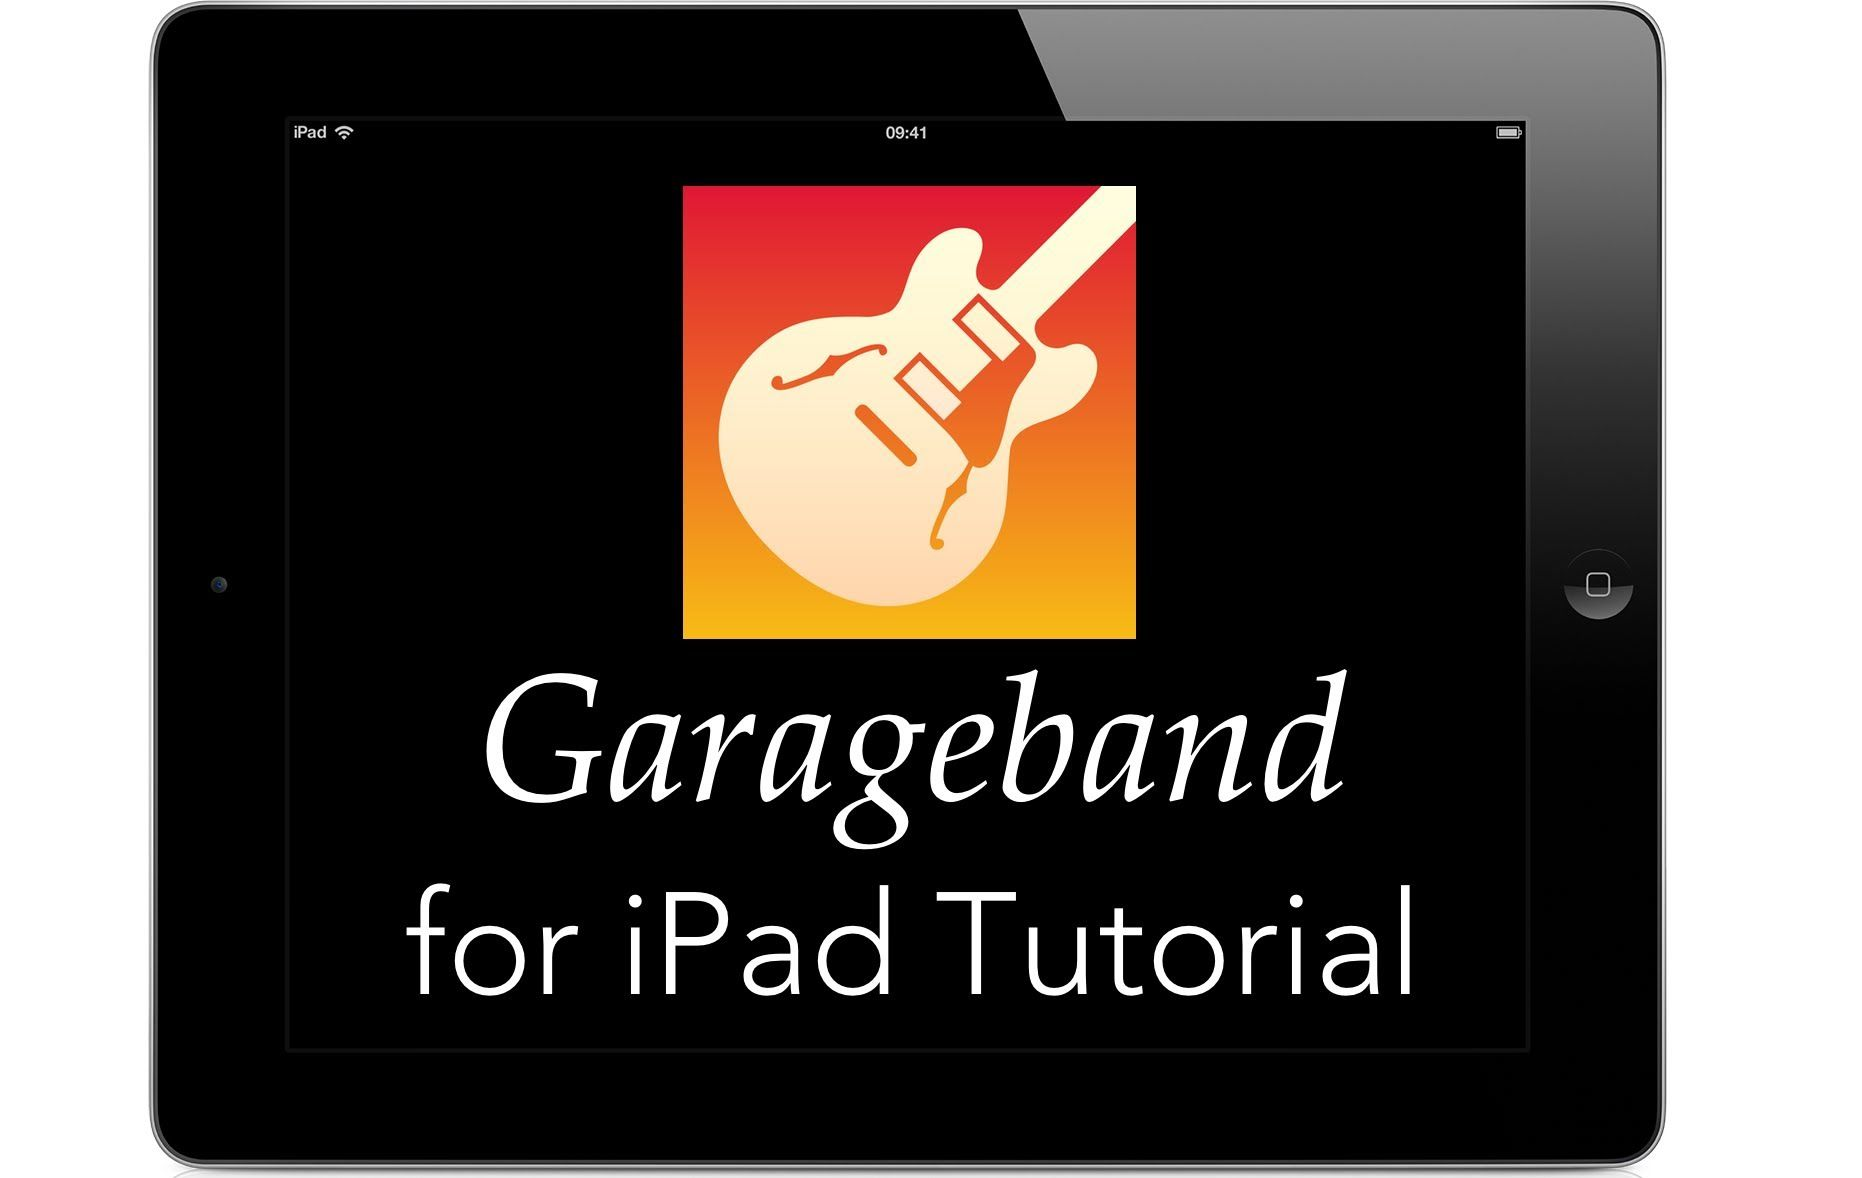 Garageband is one of our favorite apps for ipad in this